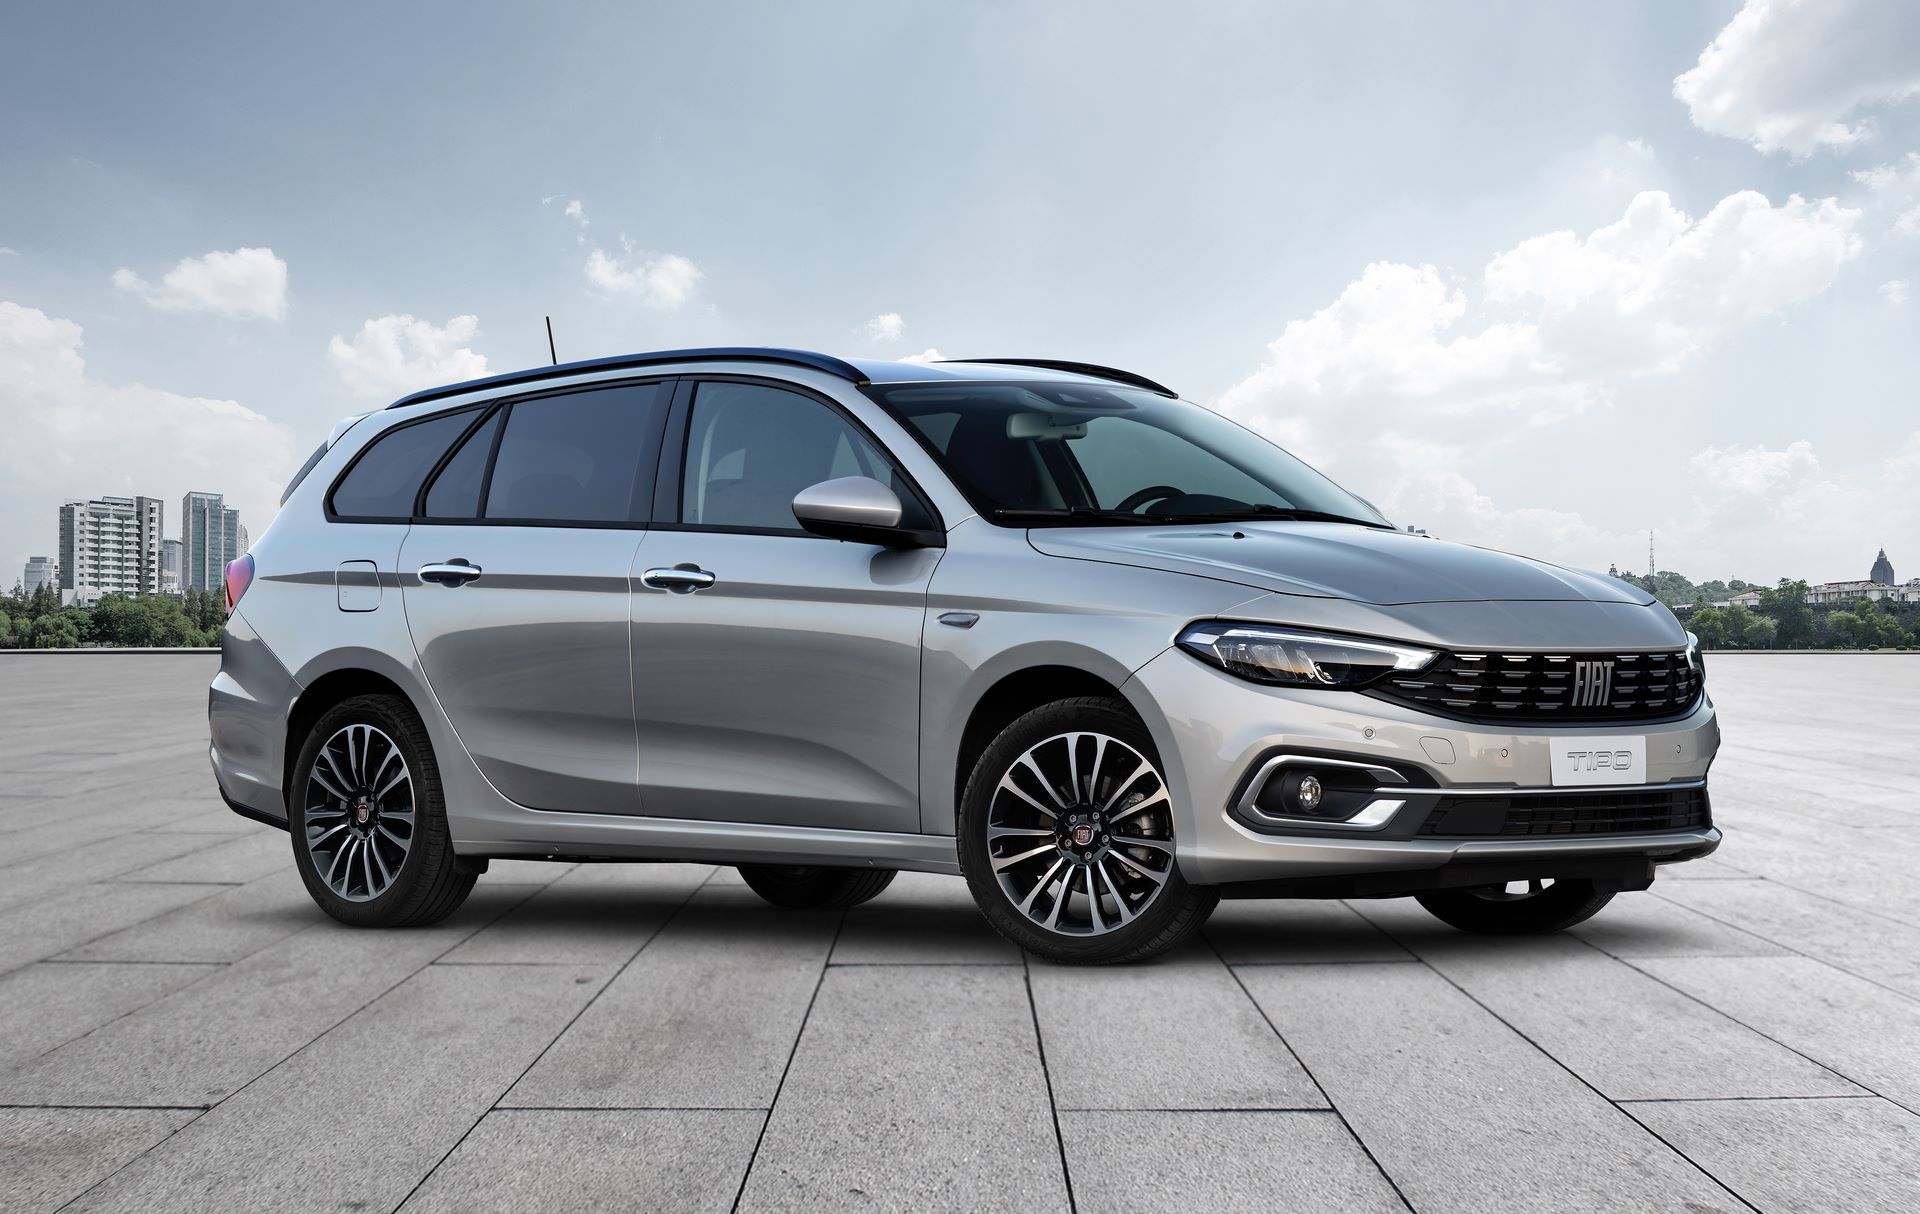 Fiat Tipo SW (2021): lifting